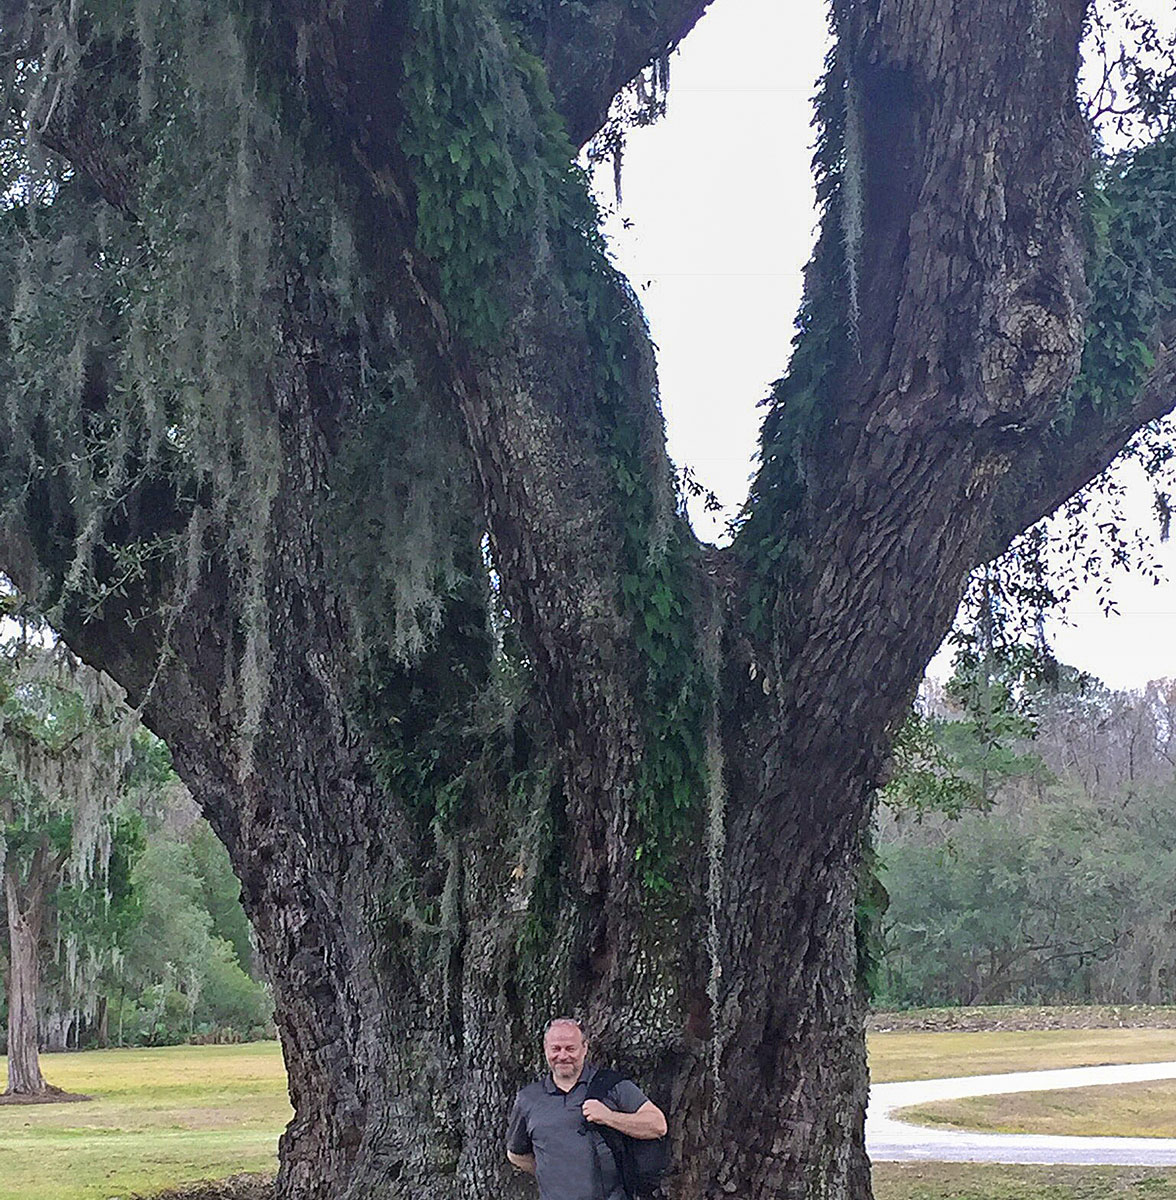 Look how small I look next to this mammoth, magnificent tree near Charleston, South Carolina. Picture by Caitlin Dotson.